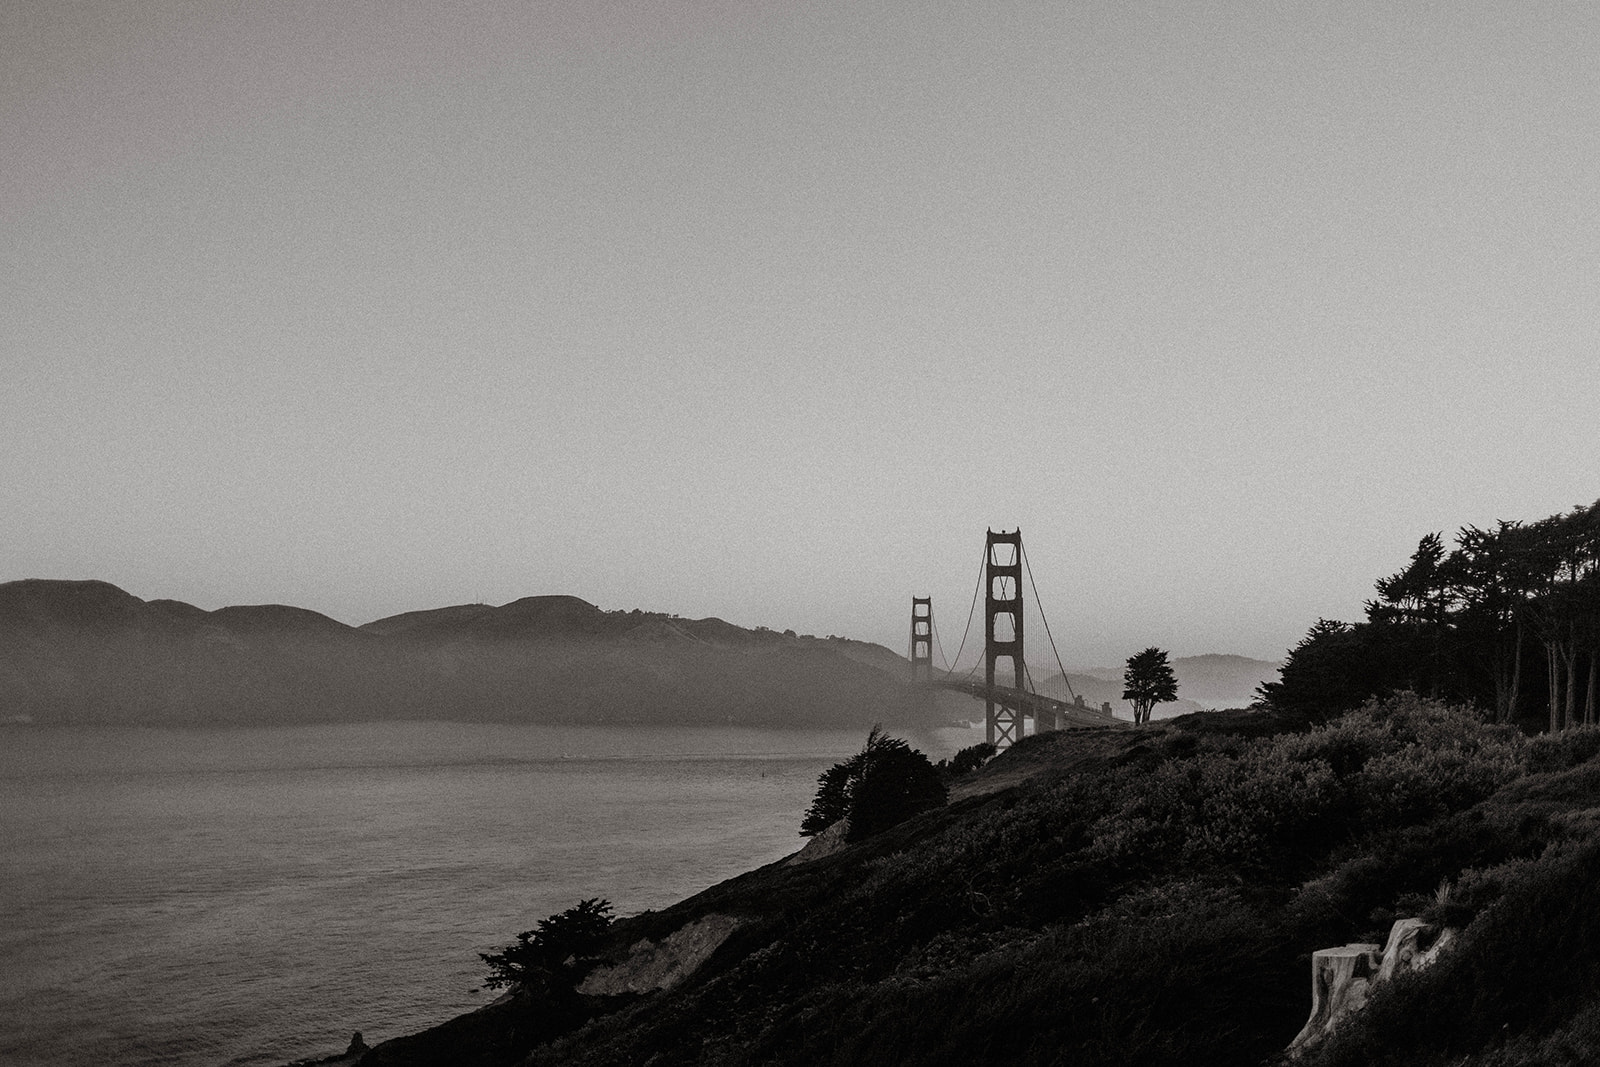 San Francisco marshall's beach golden gate bridge black and white skyline